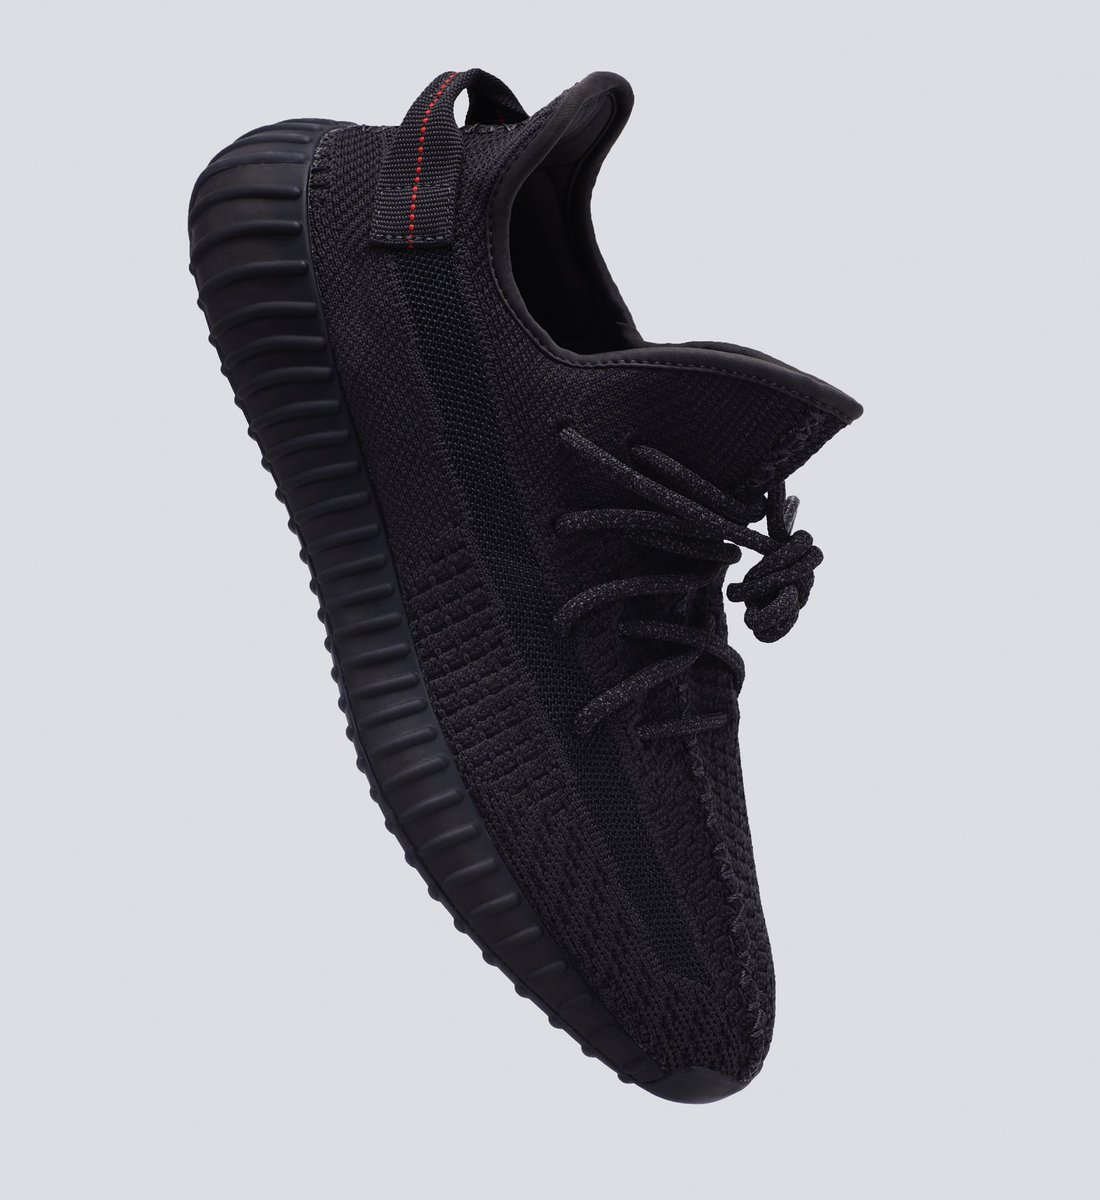 87e9b561 Shop or sell the upcoming adidas Yeezy Boost 350 V2 in black: https://stockx .com/adidas-yeezy-boost-350-v2-black …pic.twitter.com/OxJATLszMM